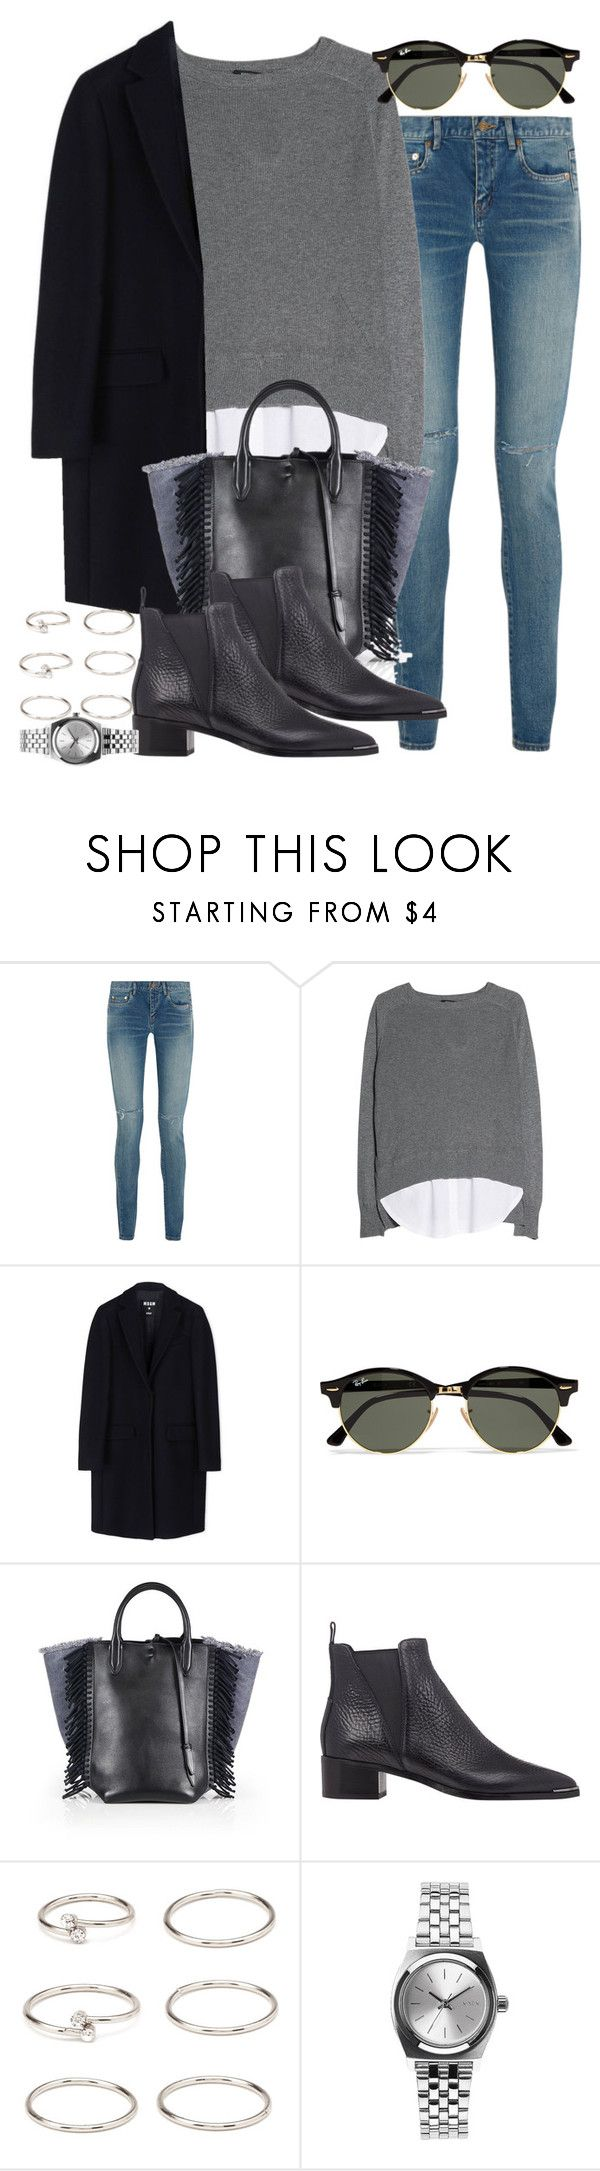 """""""Sin título #3869"""" by hellomissapple on Polyvore featuring moda, Yves Saint Laurent, MANGO, MSGM, Ray-Ban, 3.1 Phillip Lim, Acne Studios, Forever 21 y Nixon"""